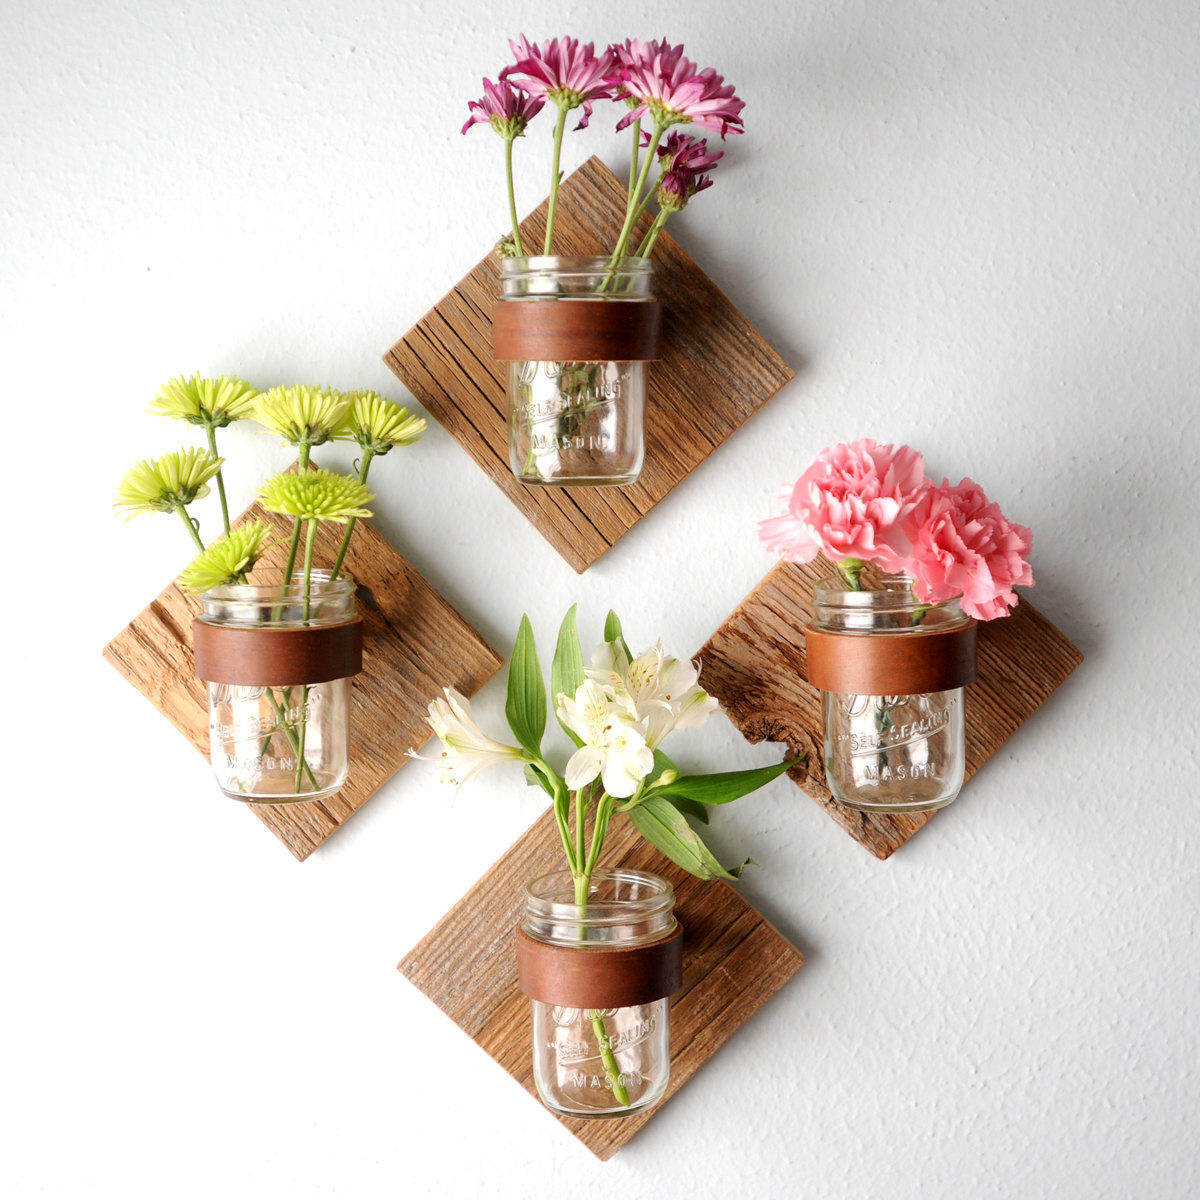 How to decorate home with flowers - Mason Jar Flowers Home Decor